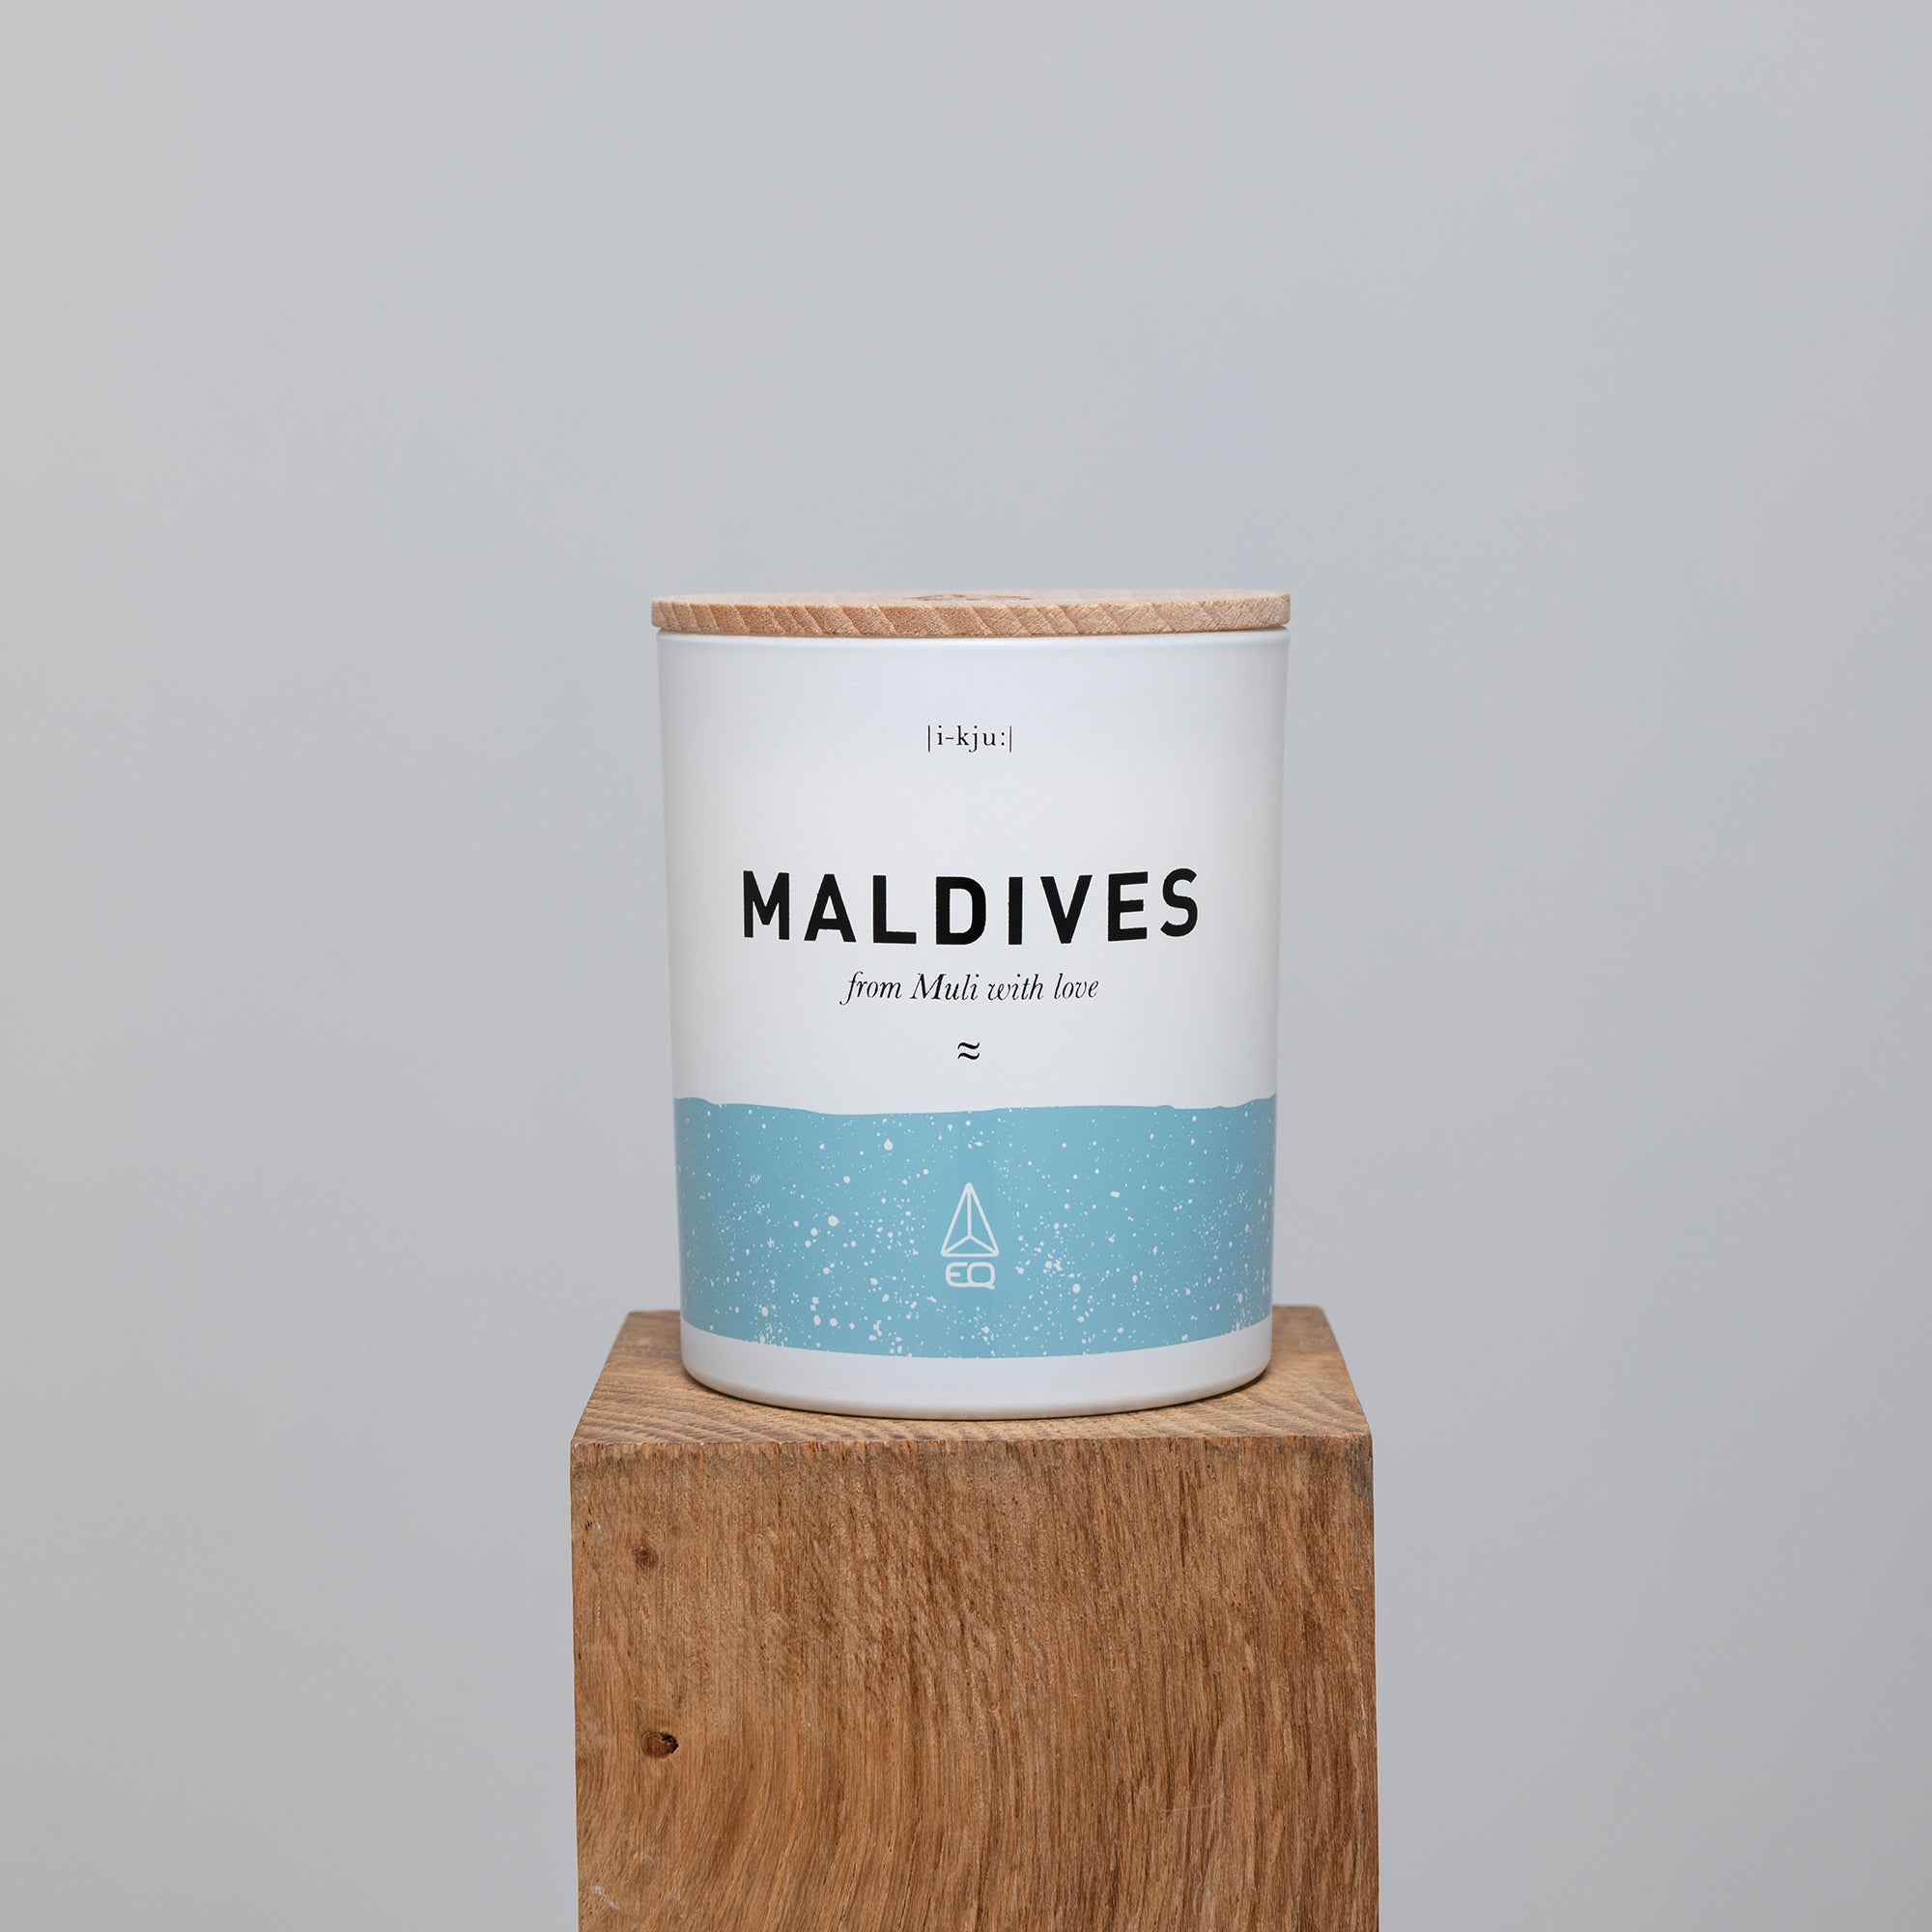 EQ Scented Candle - Maldives image 2